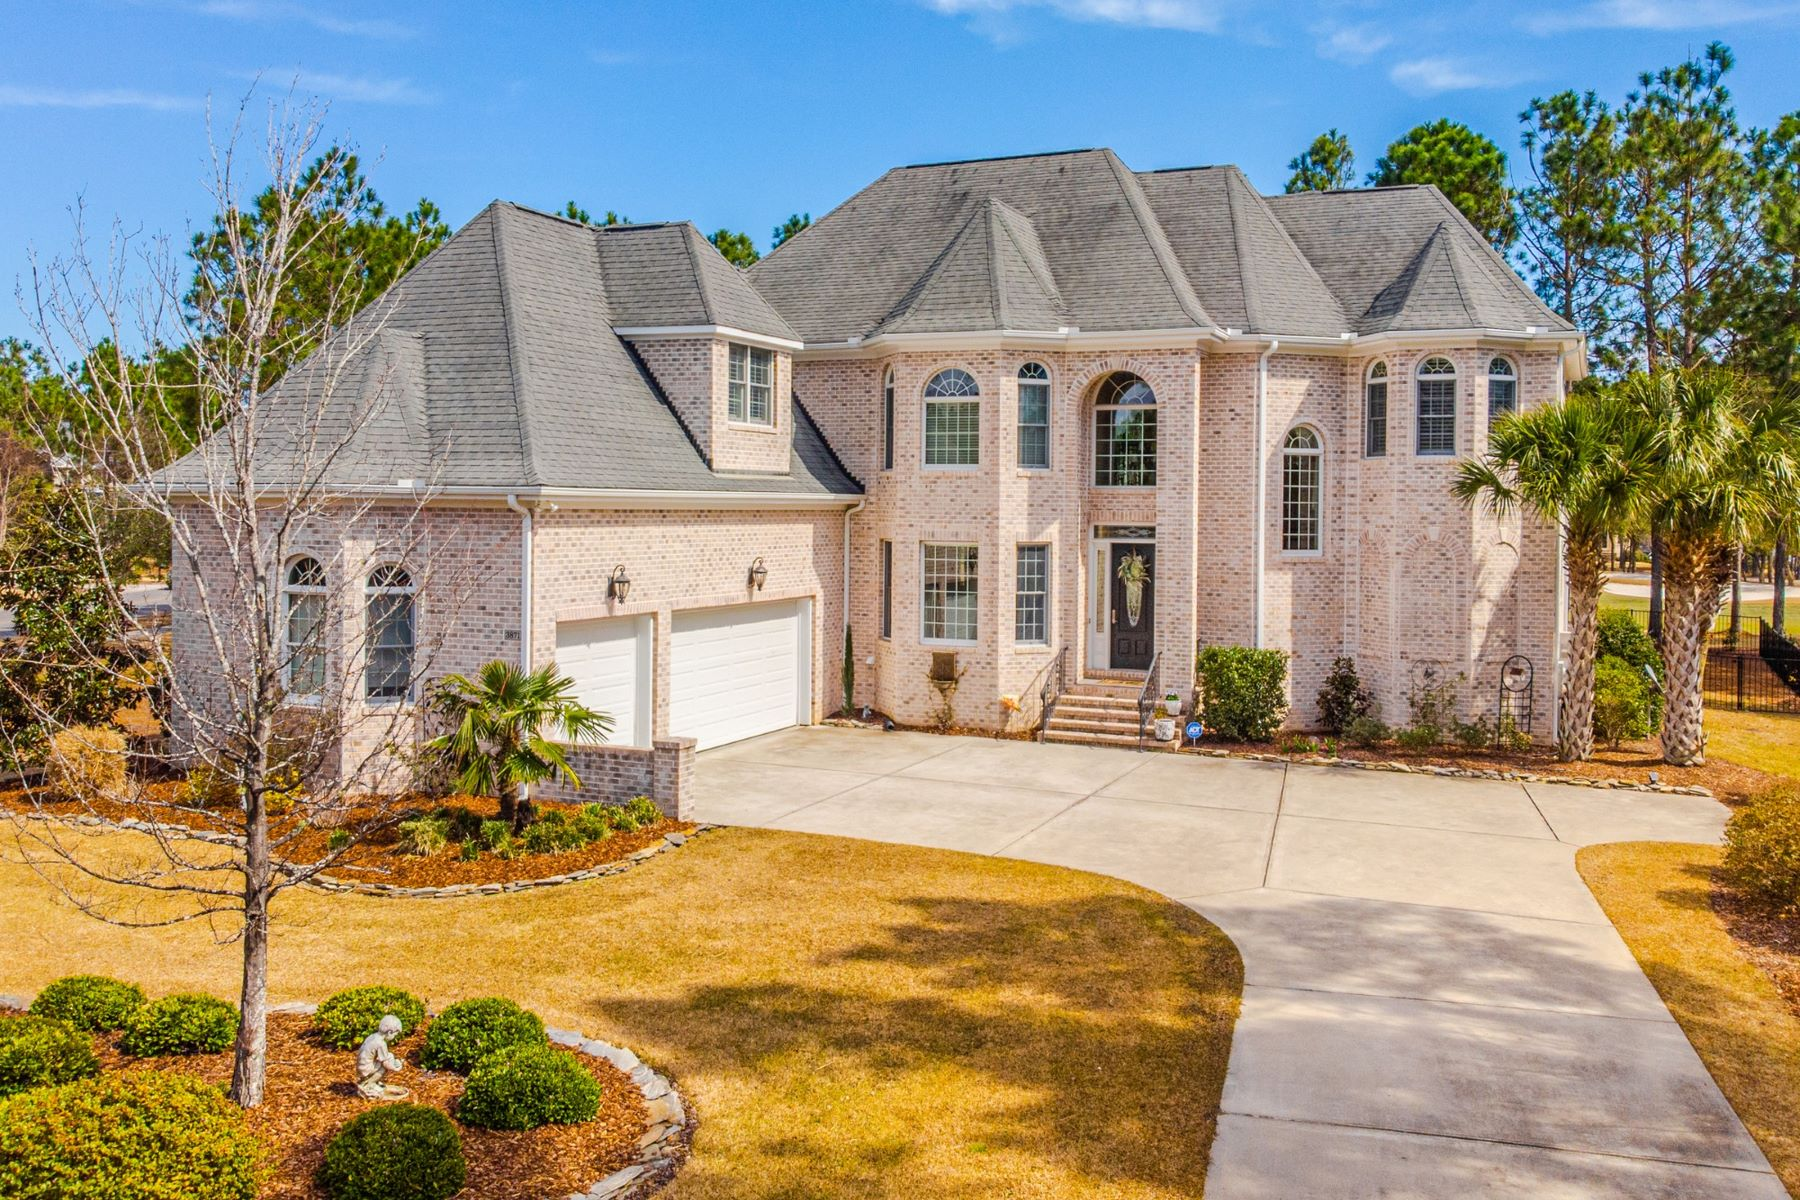 Single Family Homes for Sale at A Truly Exquisite Home 3871 Ridge Crest Drive Southport, North Carolina 28461 United States